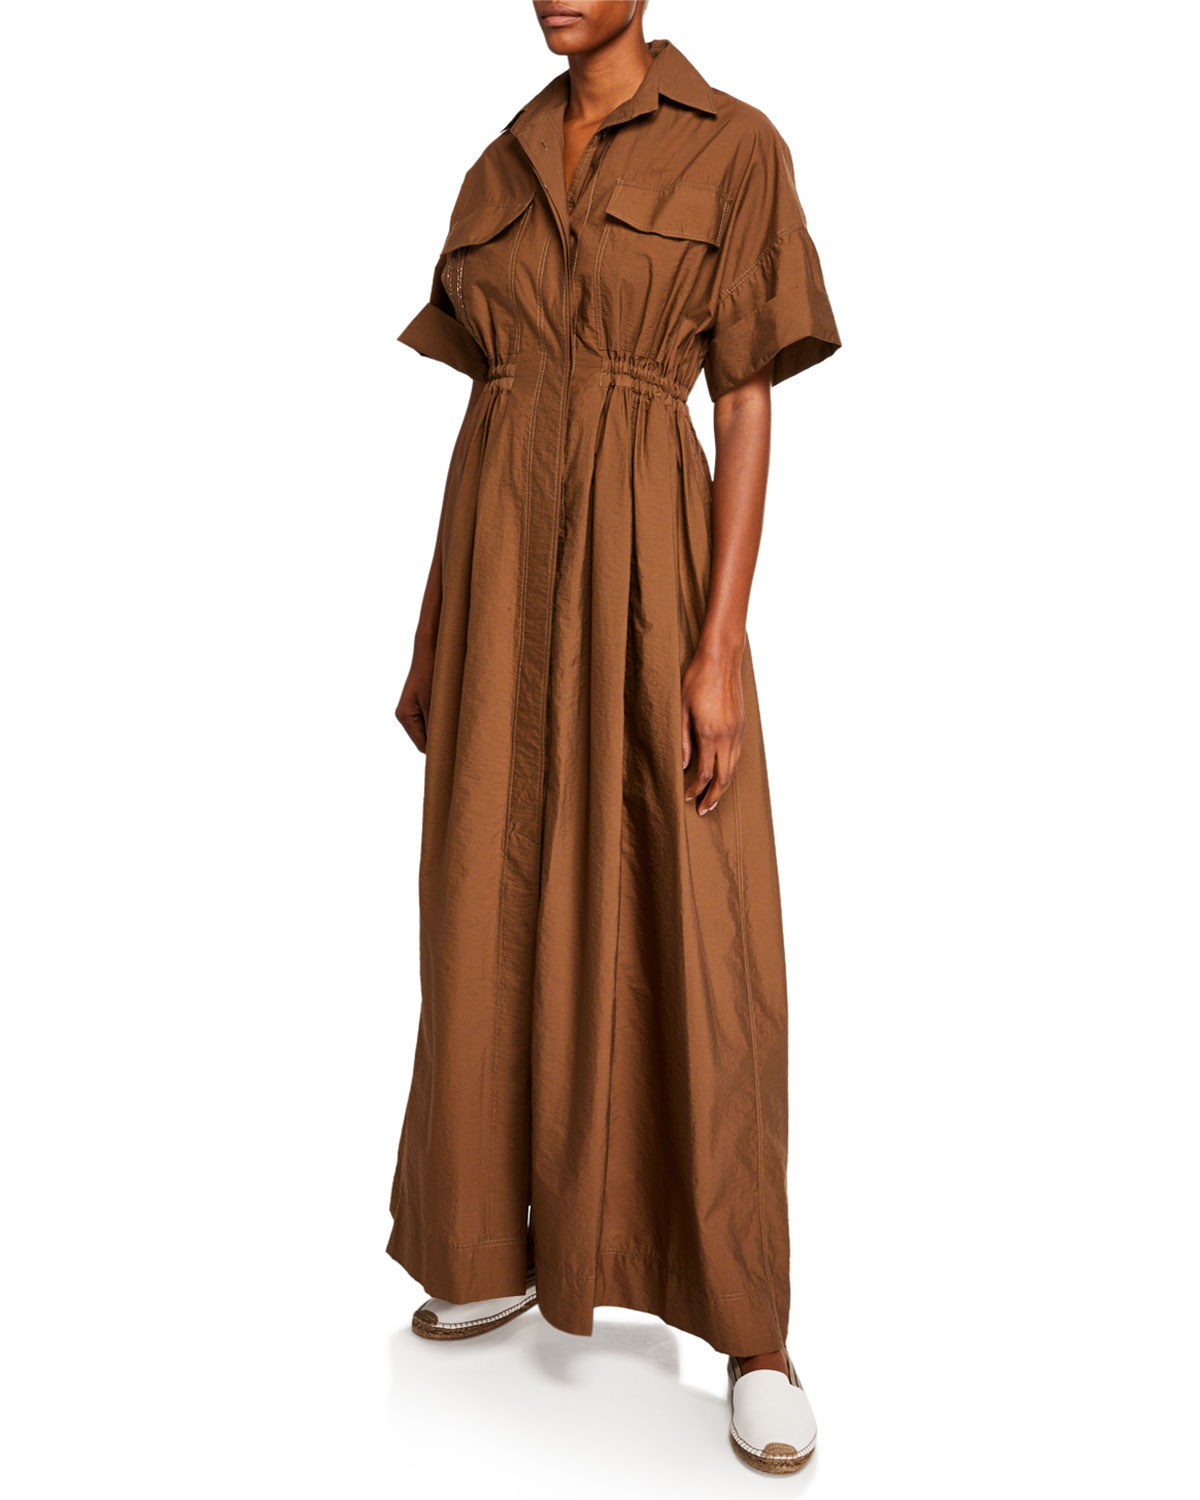 Brunello Cucinelli Dresses Short-Sleeve Crinkled Cotton Shirtdress, BROWN